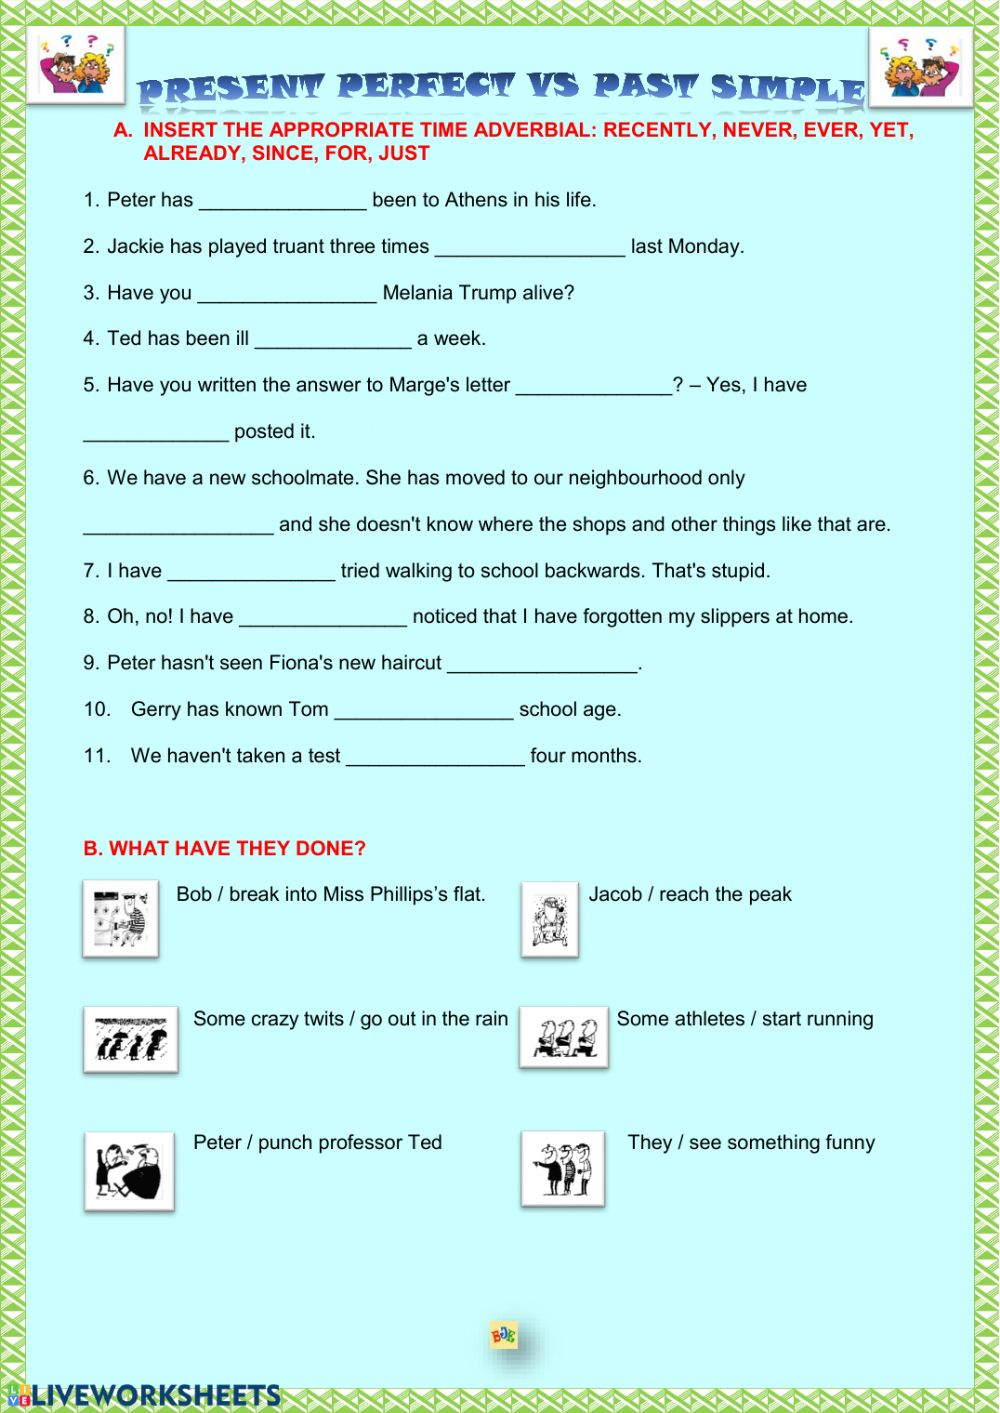 Past Simple vs Present Perfect Simple - Interactive worksheet